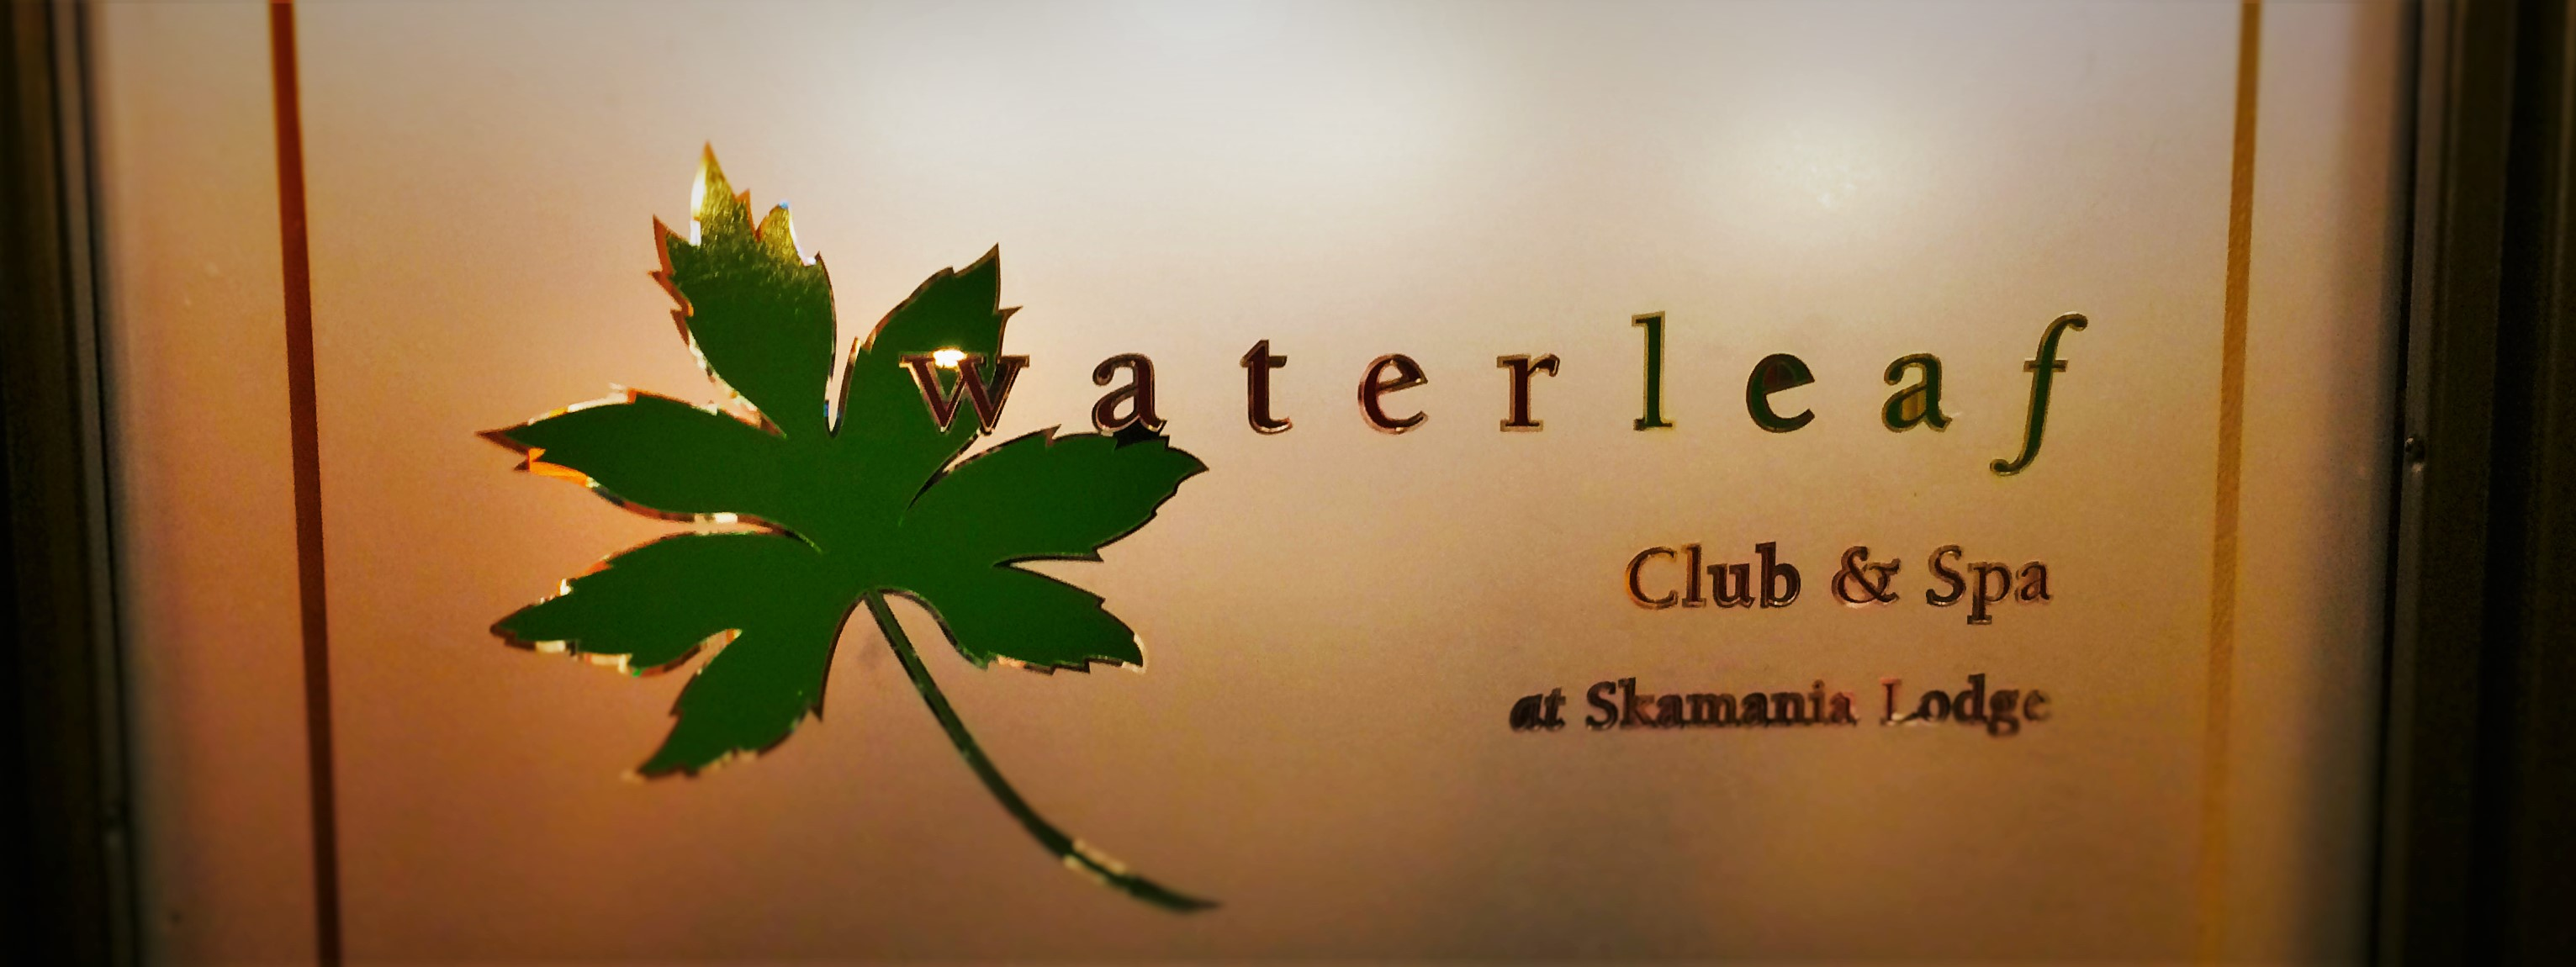 Waterleaf Spa at Skamania Lodge 2